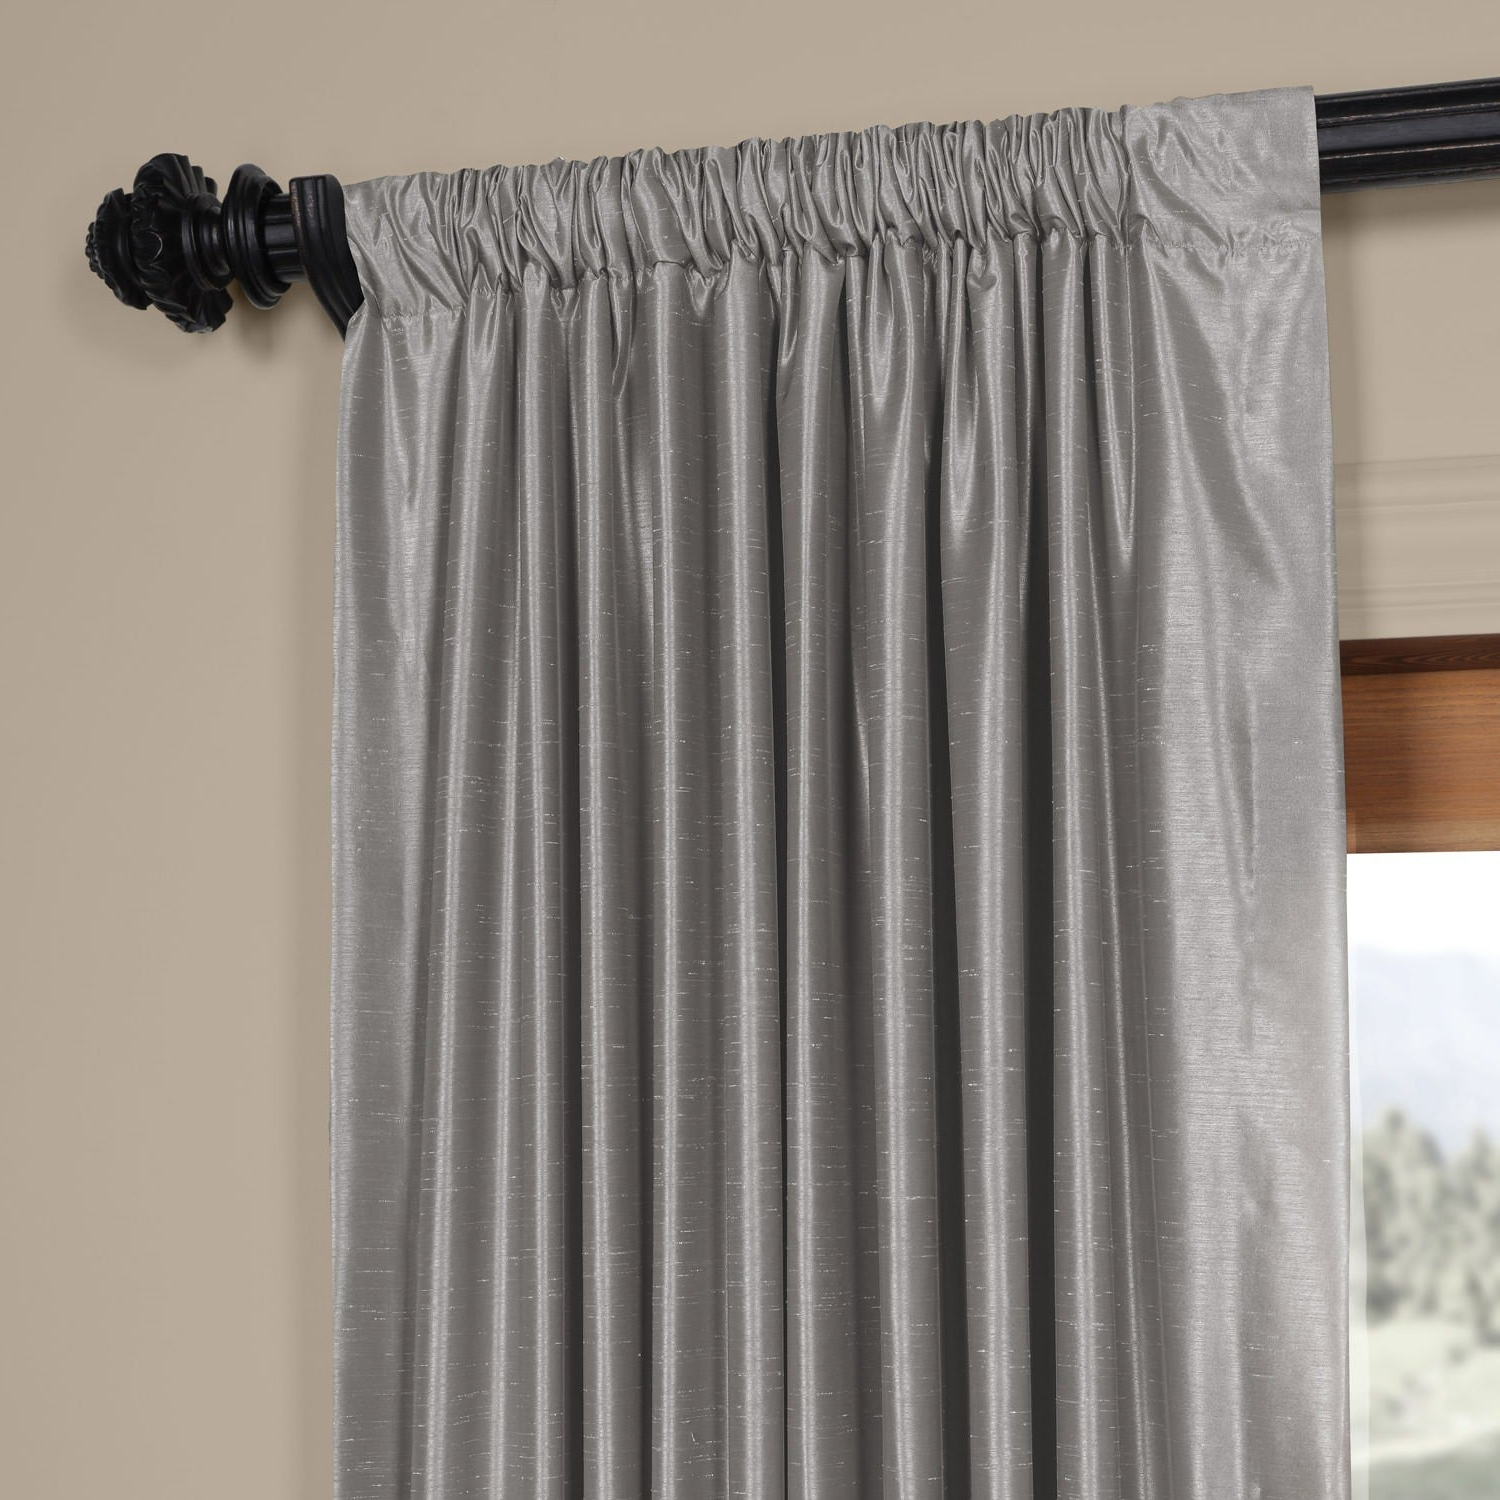 Most Current Silver Vintage Faux Textured Silk Curtain Panels With Exclusive Fabrics Silver Vintage Faux Textured Dupioni Silk Curtain Panel (View 7 of 20)